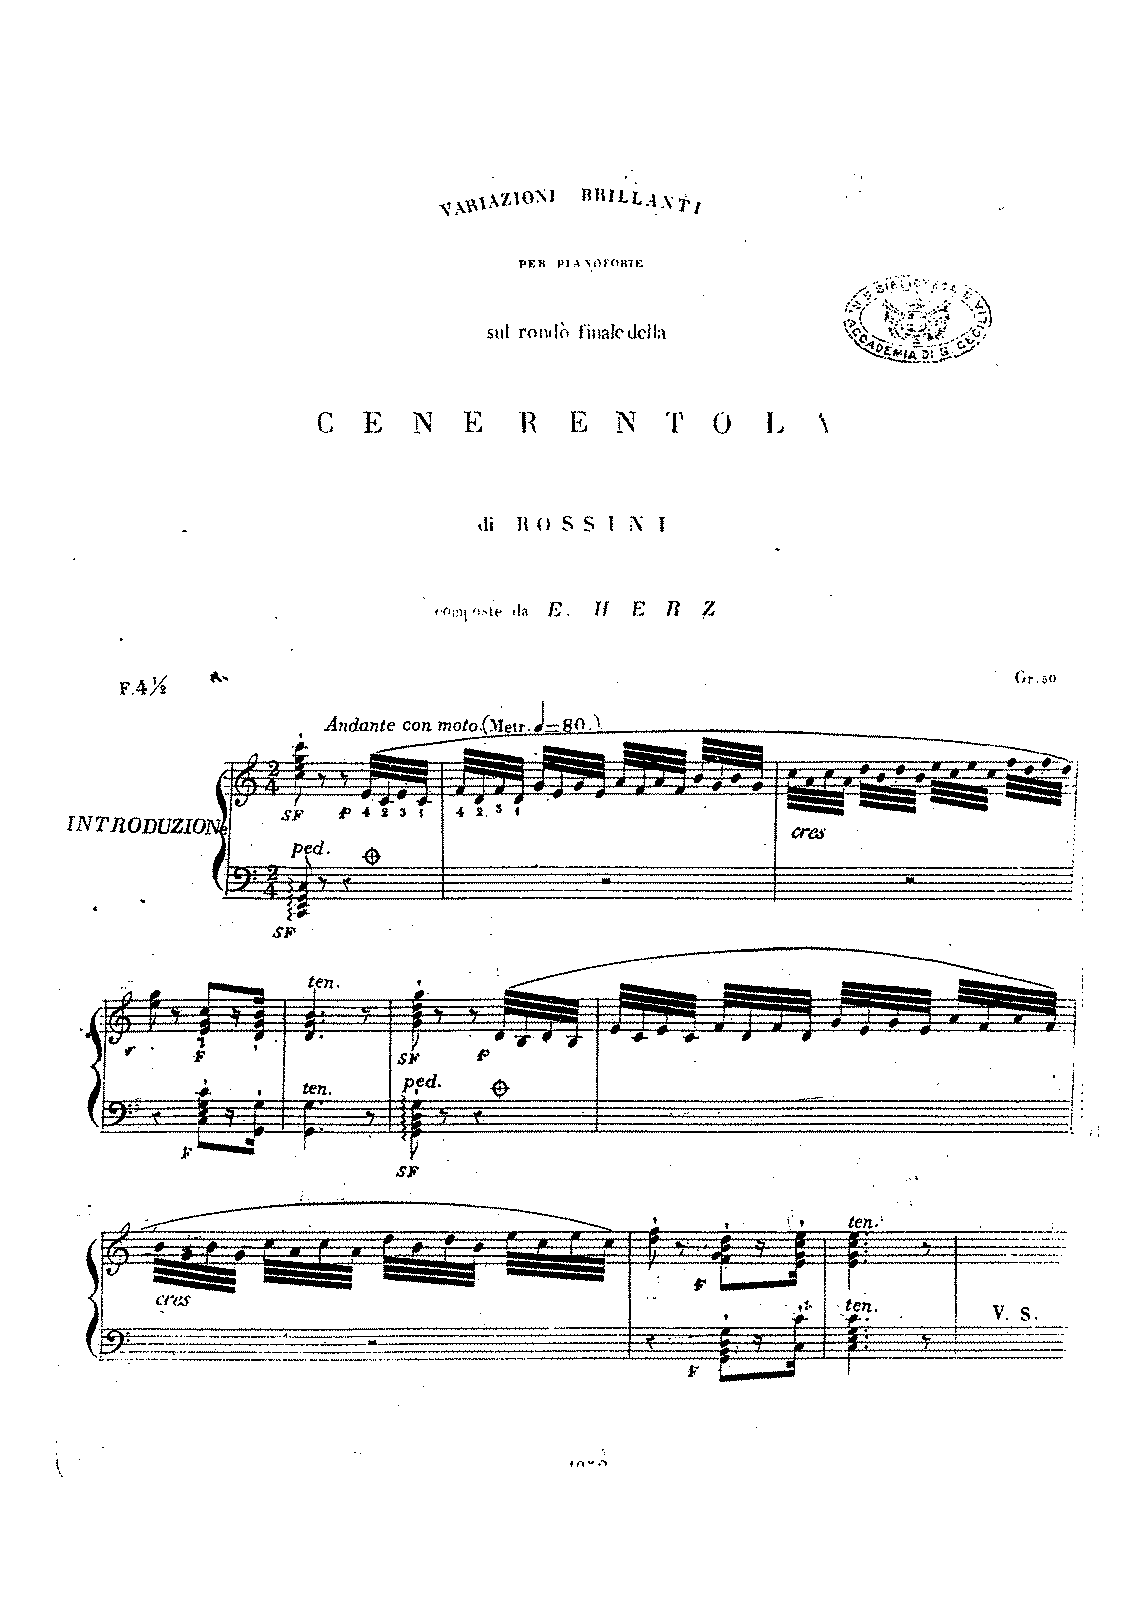 Herz - Variations Brilliantes on Rossini's 'Cenerentola'.pdf